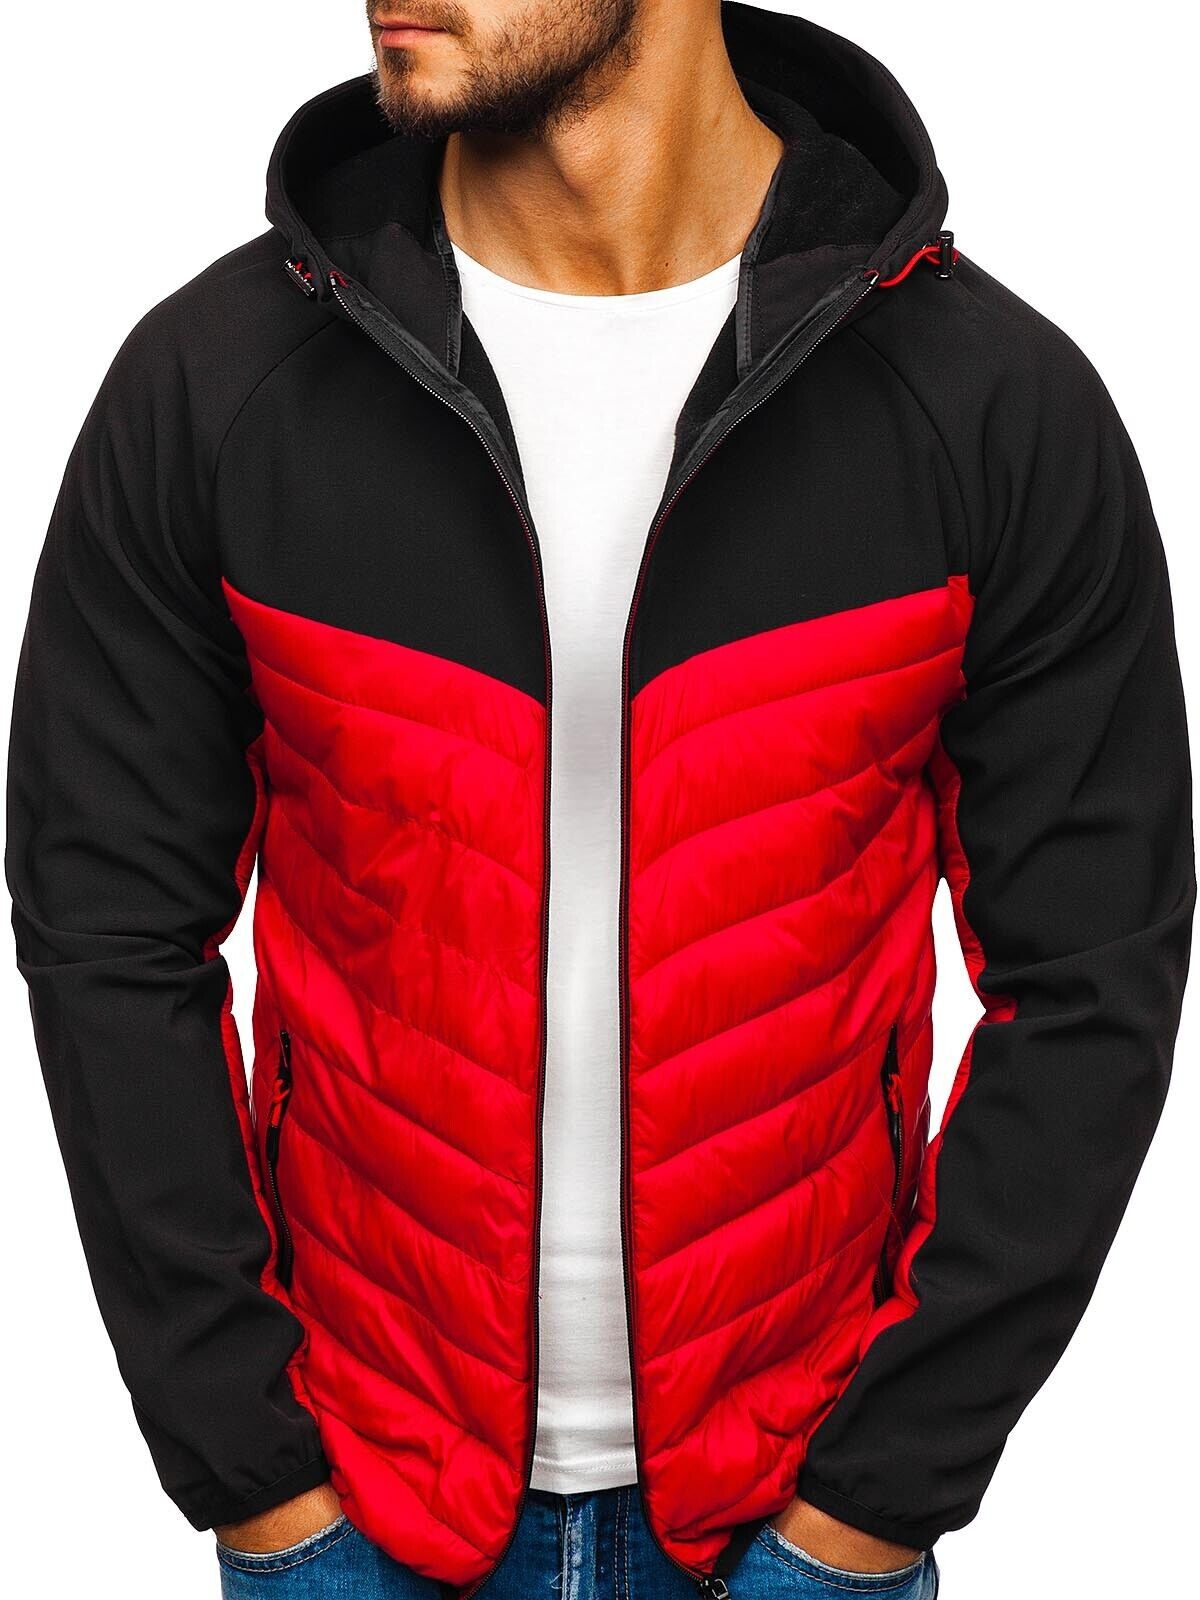 J.Style LY1007 Rot